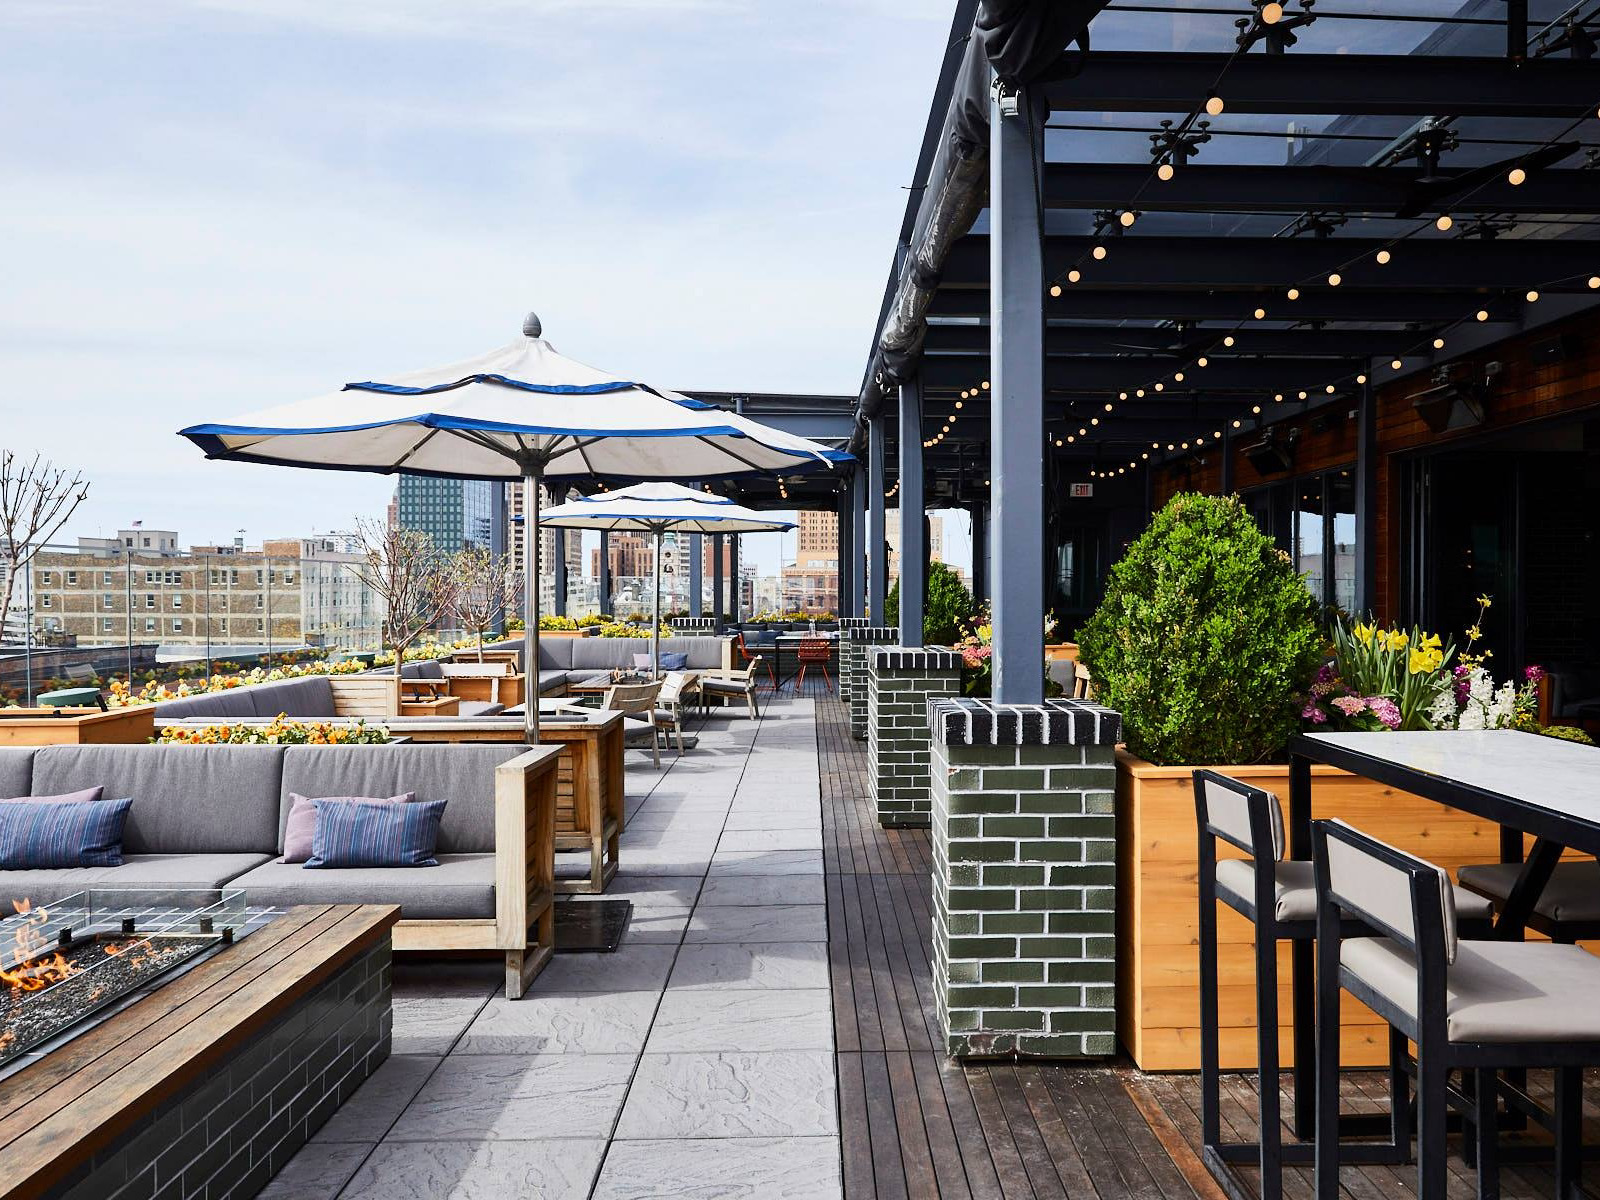 The Outsider rooftop patio